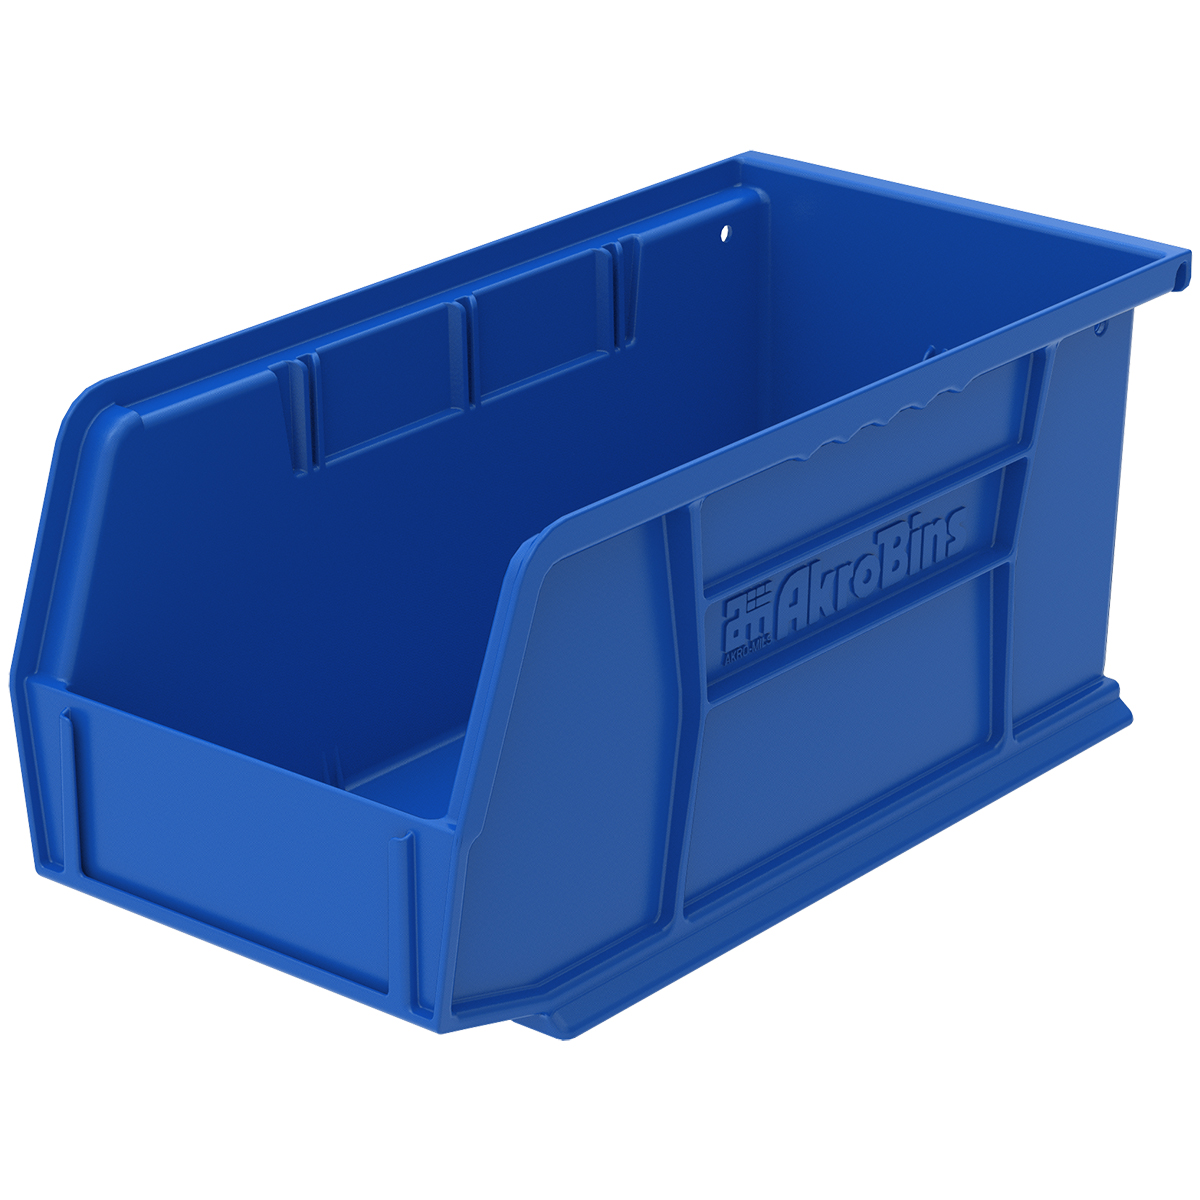 AkroBin 10-7/8 x 5-1/2 x 5, Blue (30230BLUE).  This item sold in carton quantities of 12.